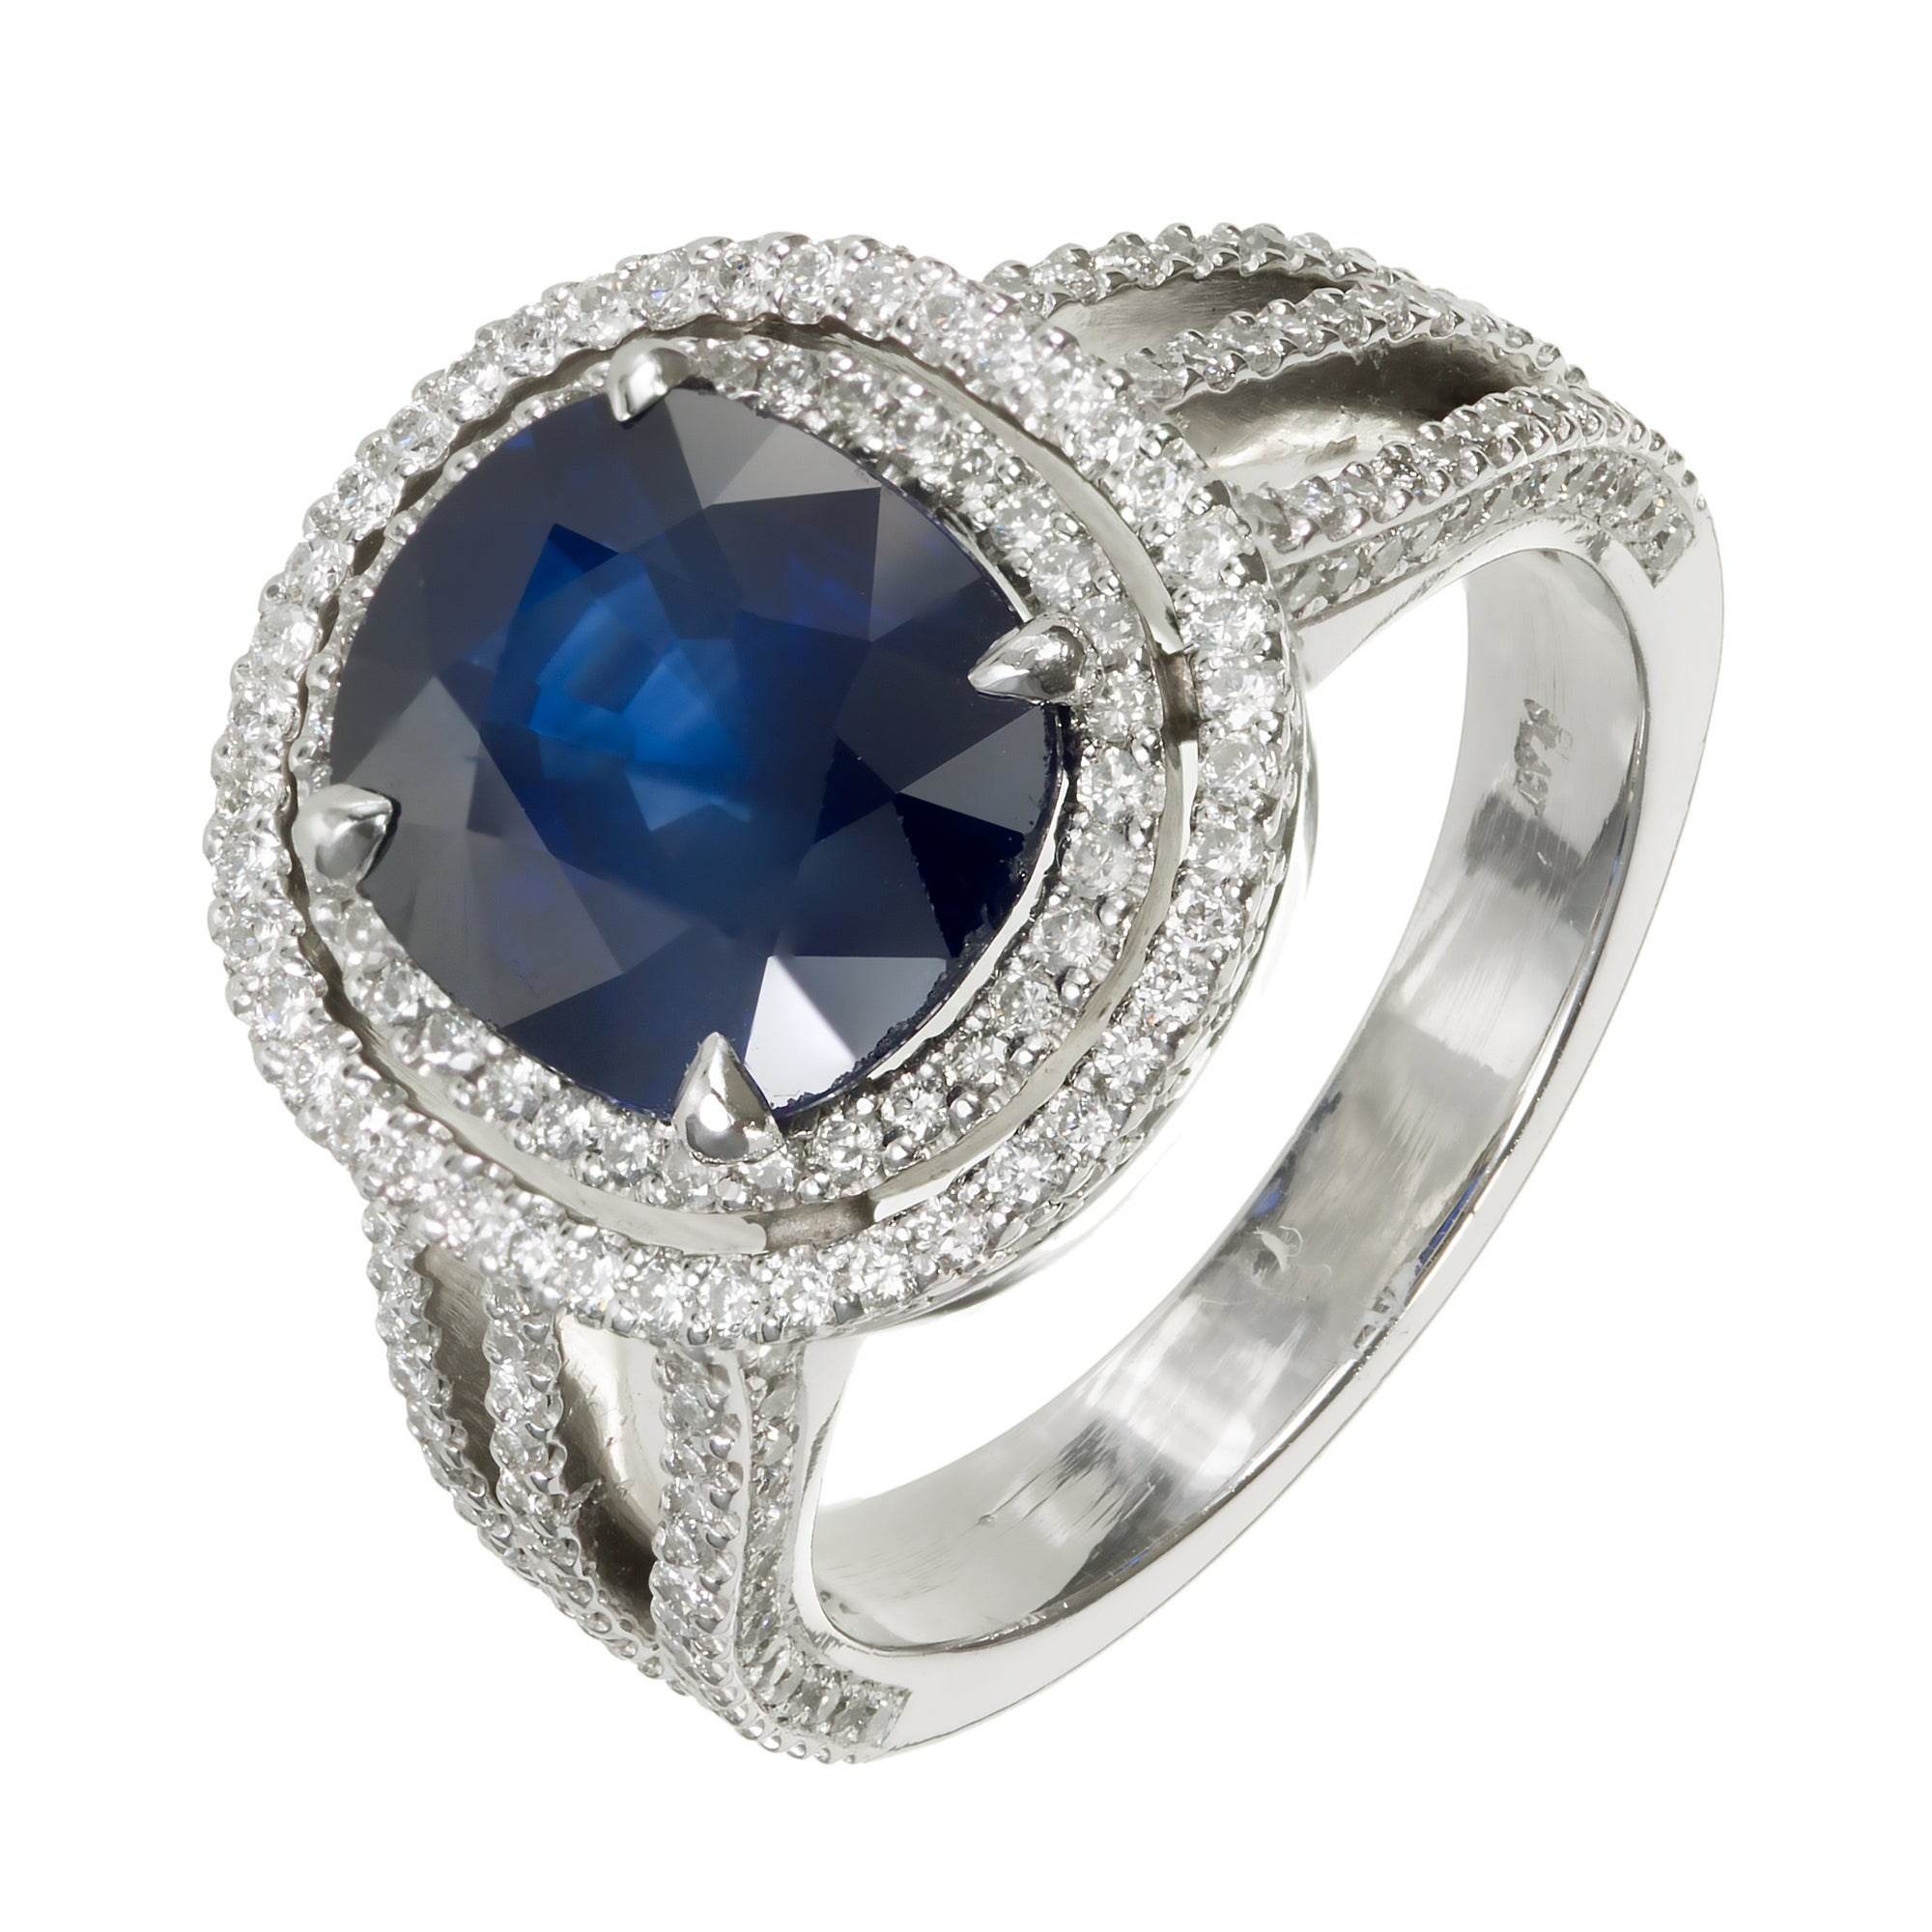 plain ring rings topic engagement show me wedding with your blue band